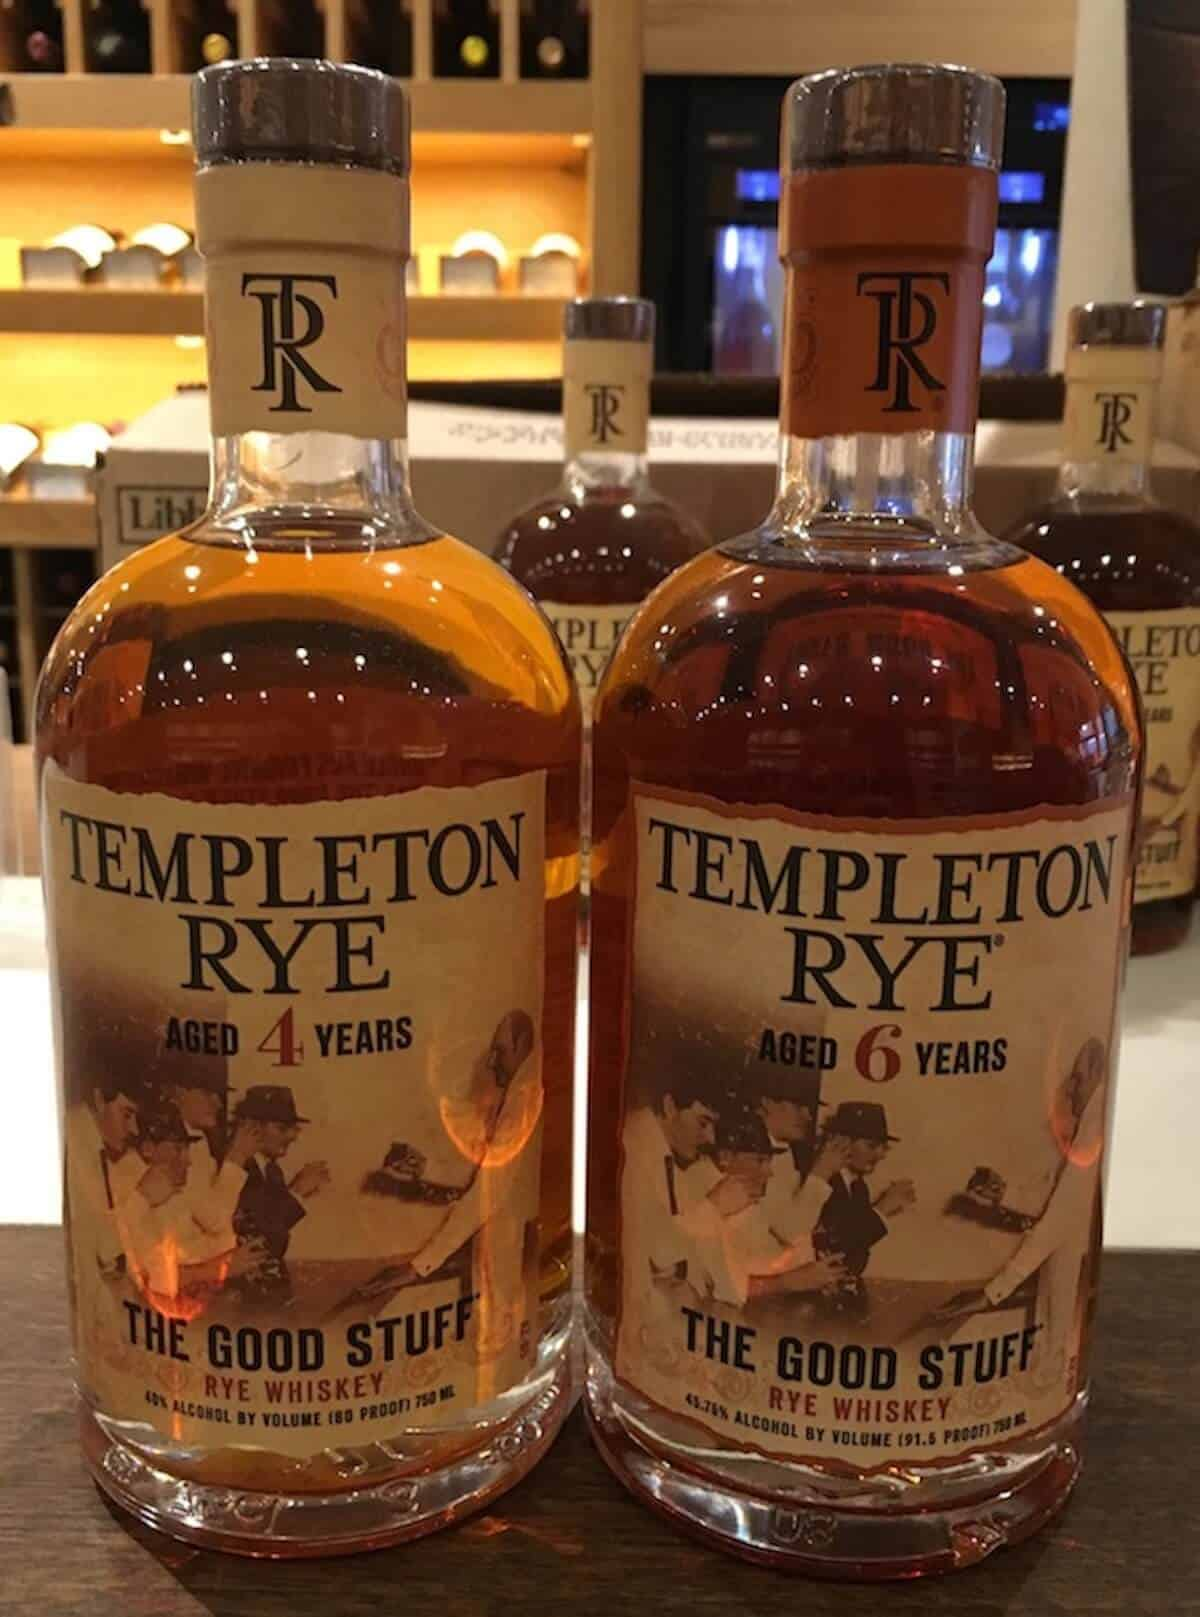 Templeton Rye 4 year & 6 year whiskey in bottles on a counter.